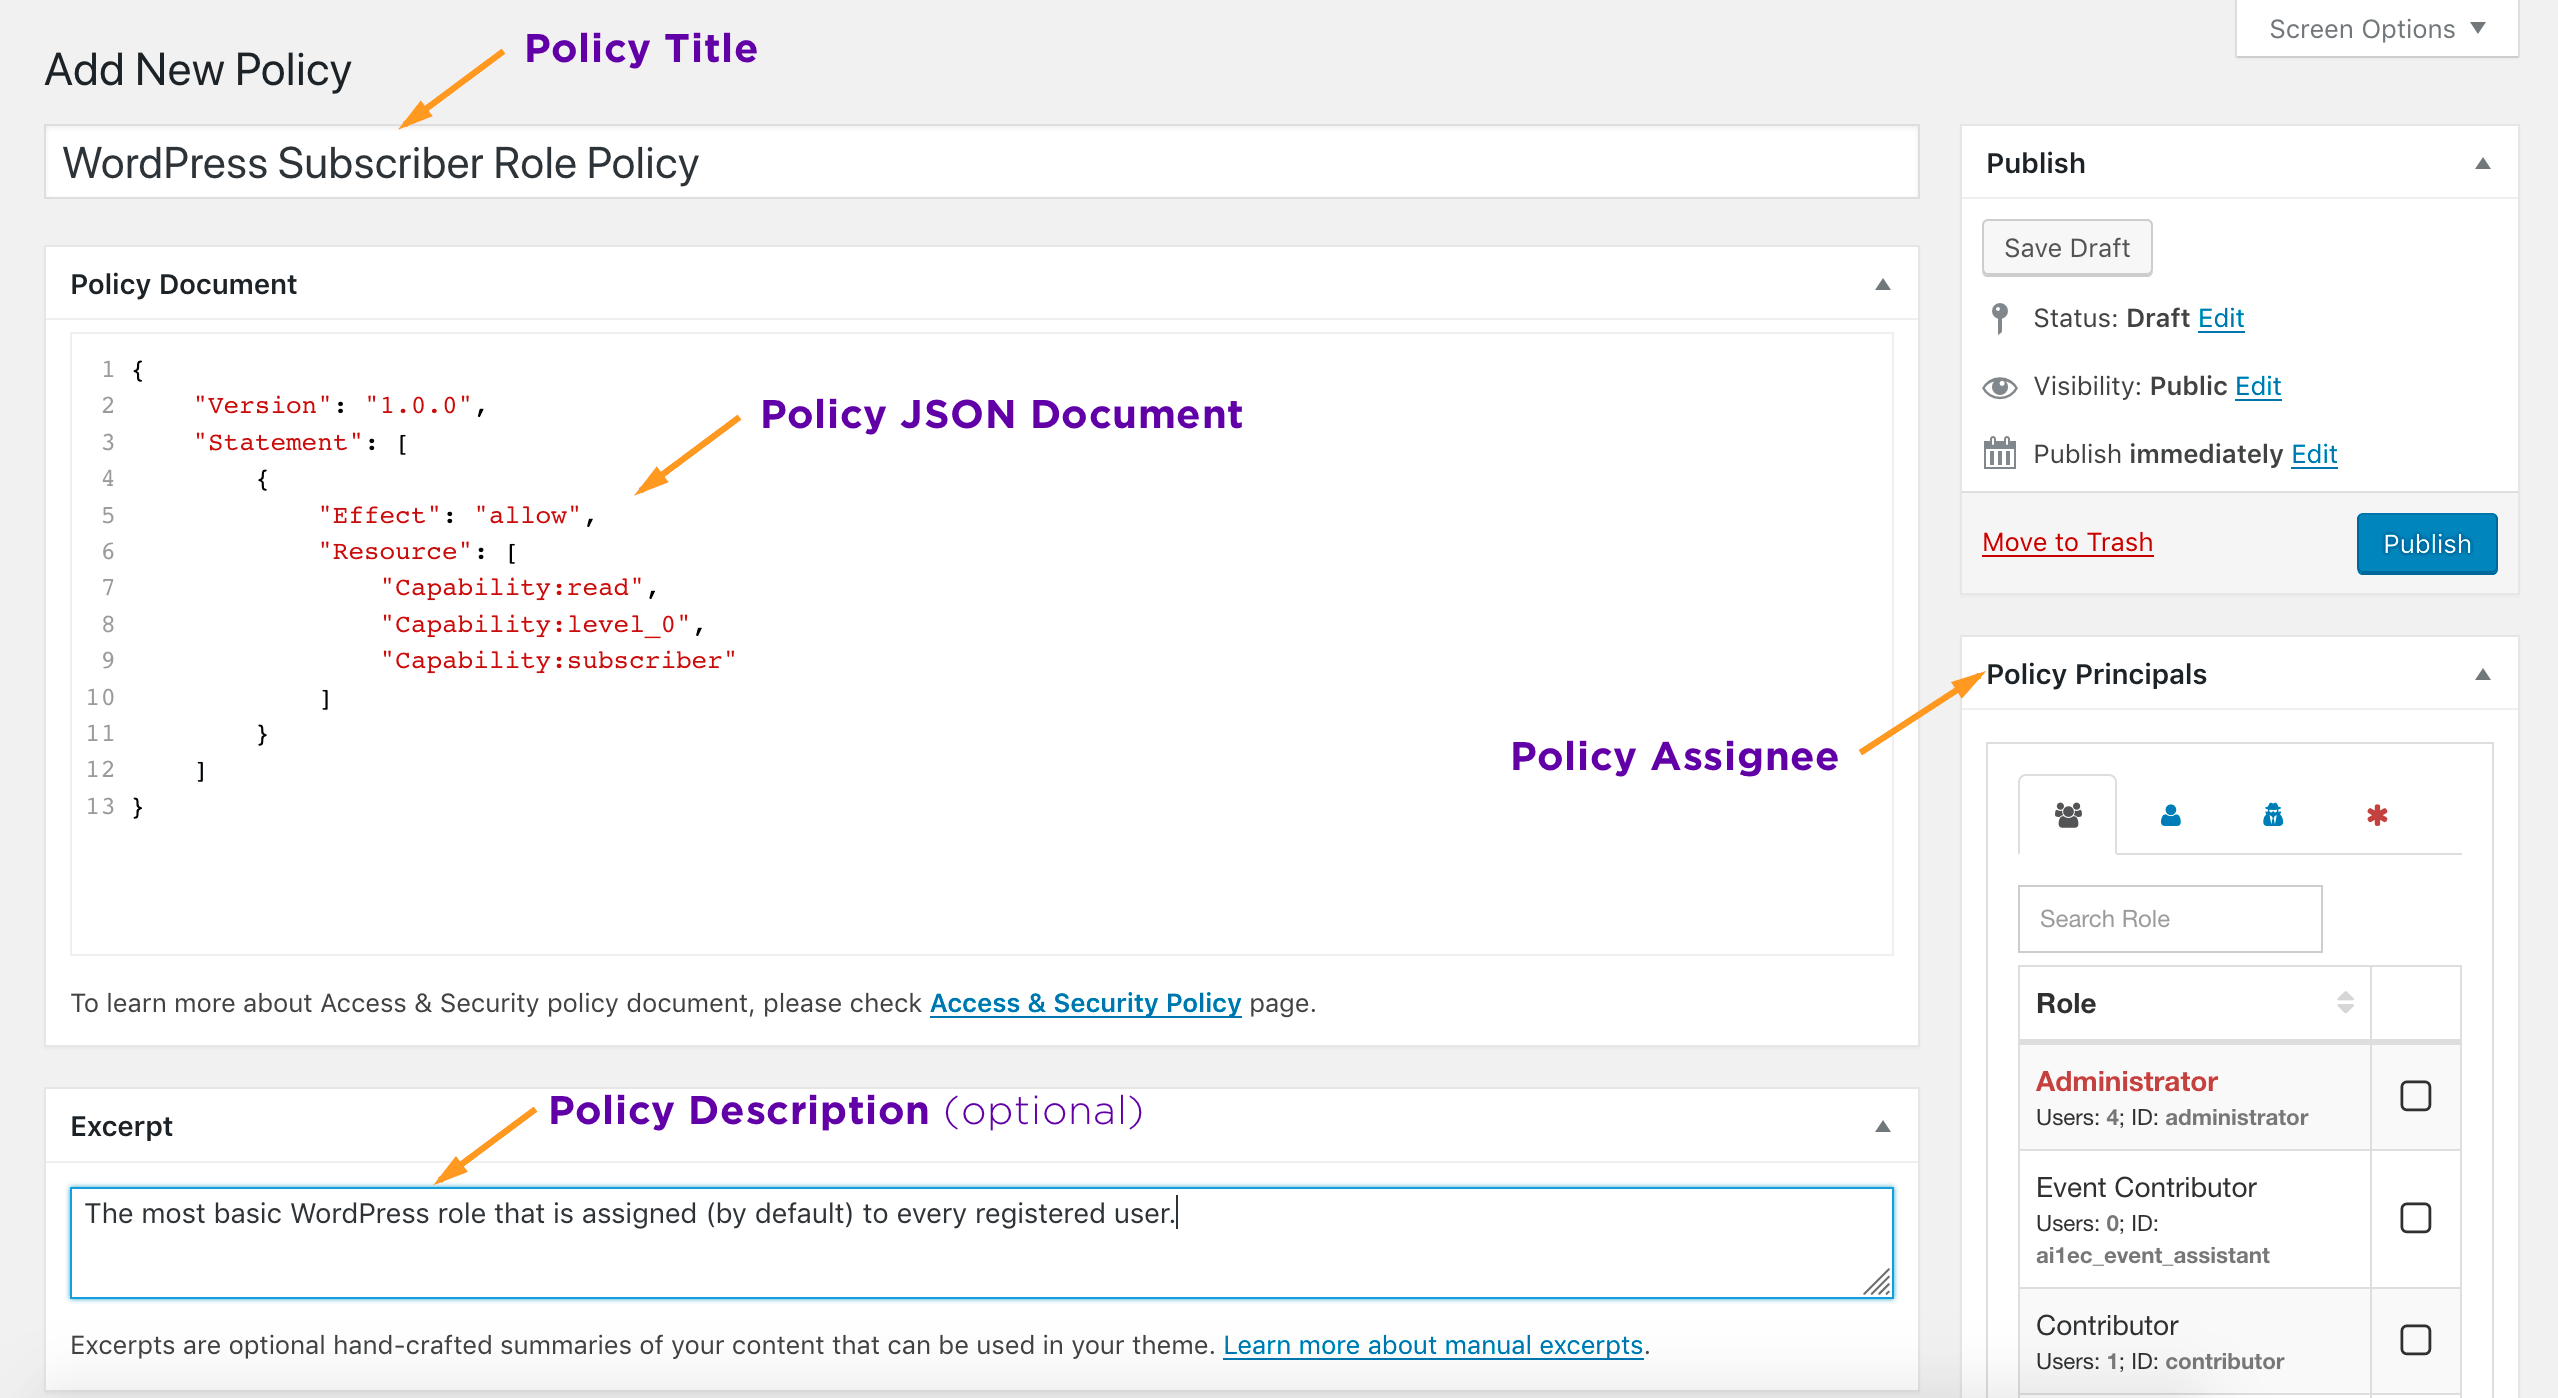 AAM Edit Policy Screen